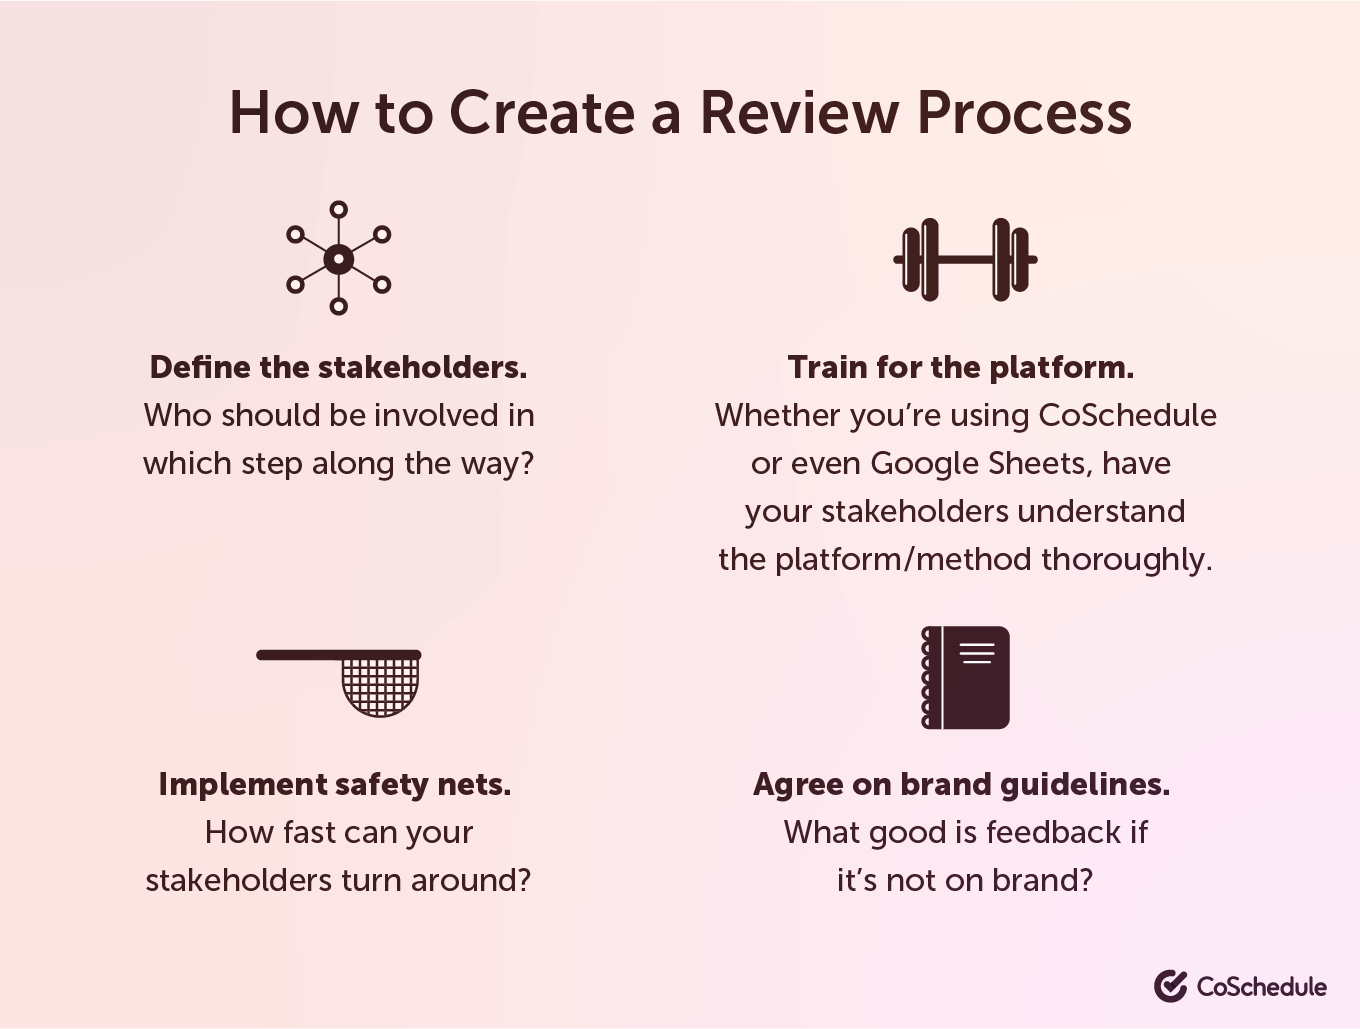 How to create a review process